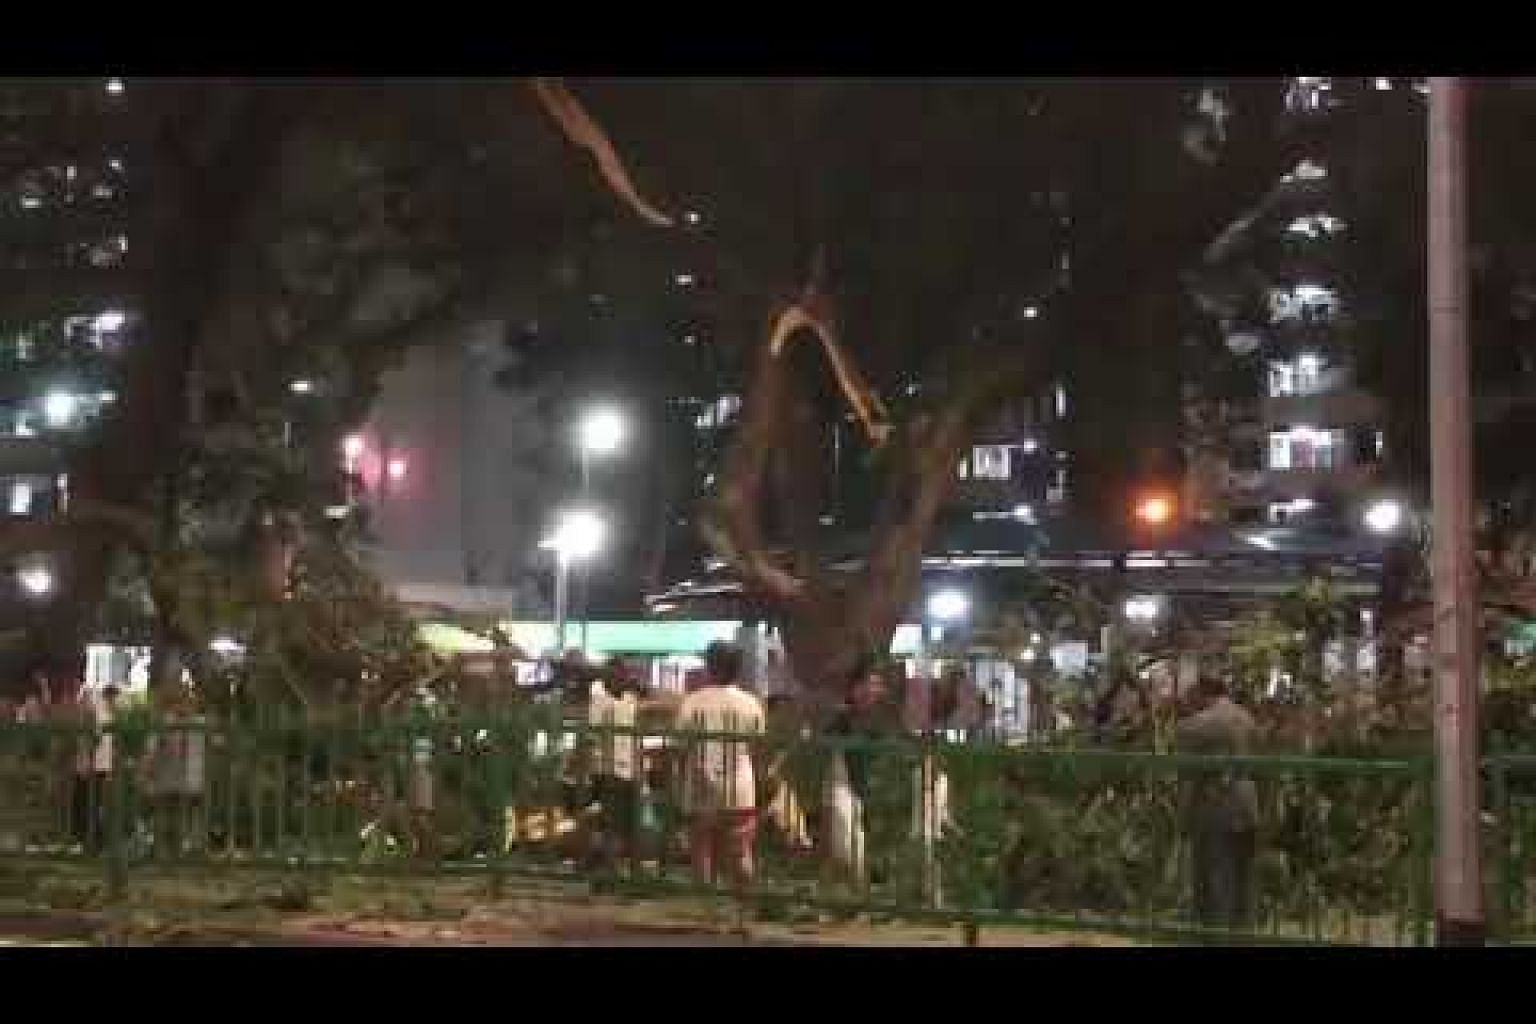 Passers-by help move fallen tree along Ganges Avenue